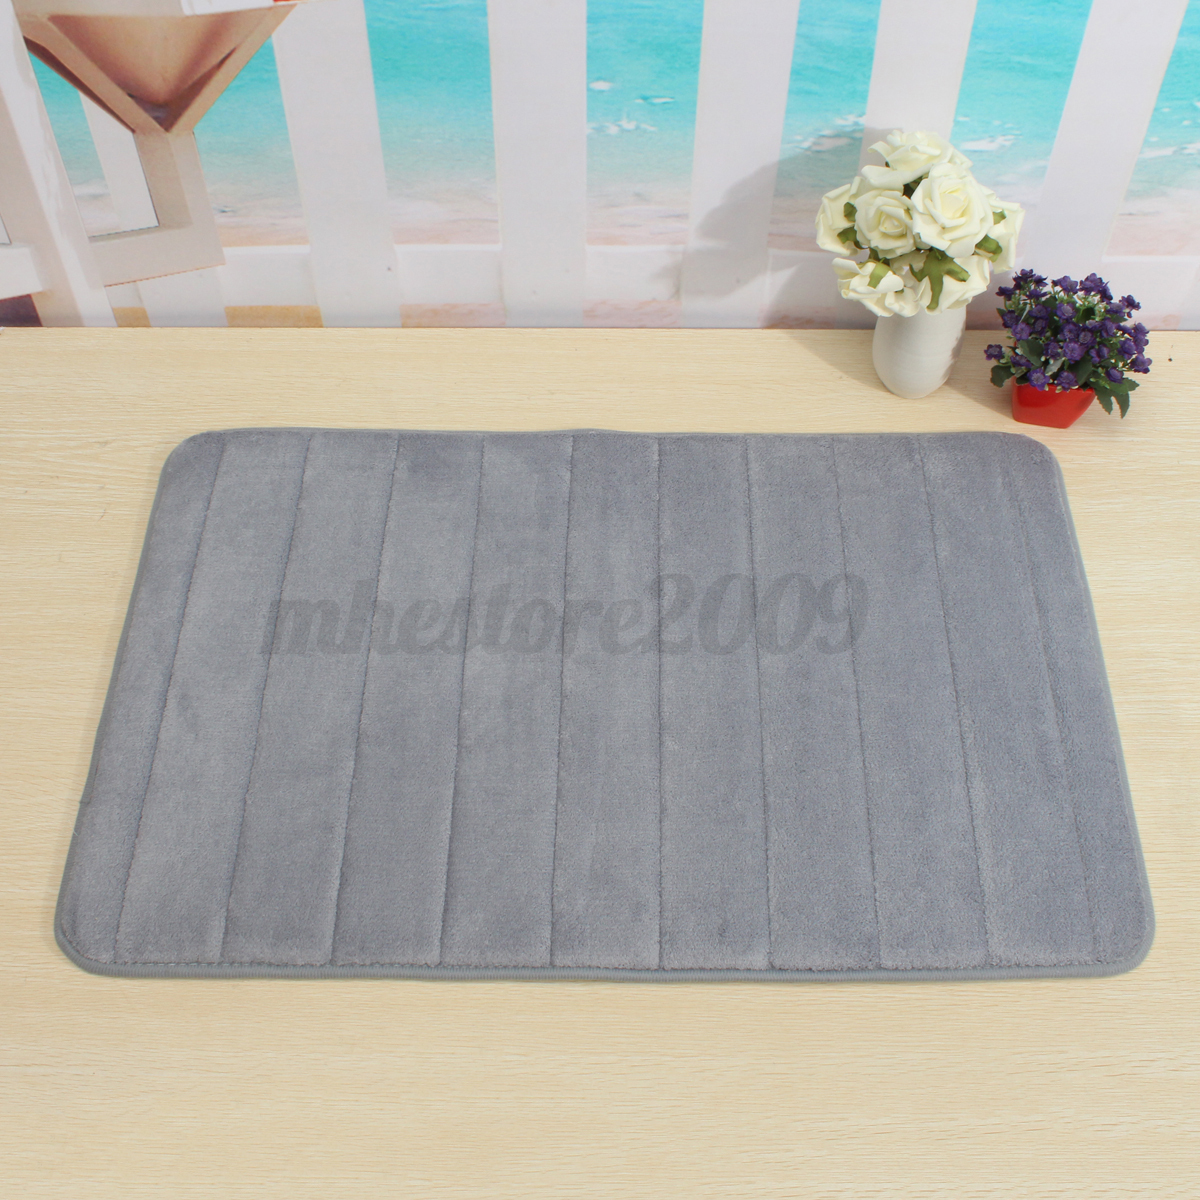 non slip bathroom floor memory foam non slip bathroom bath mat bedroom shower 19749 | 12D79297568C8BF68D029ACDCFCFC6D633CBDC26839A564663D29AE8738393D243C8CD990ED29E99CC36D253C93FCD9E5323432373030FCD9CA0CE73